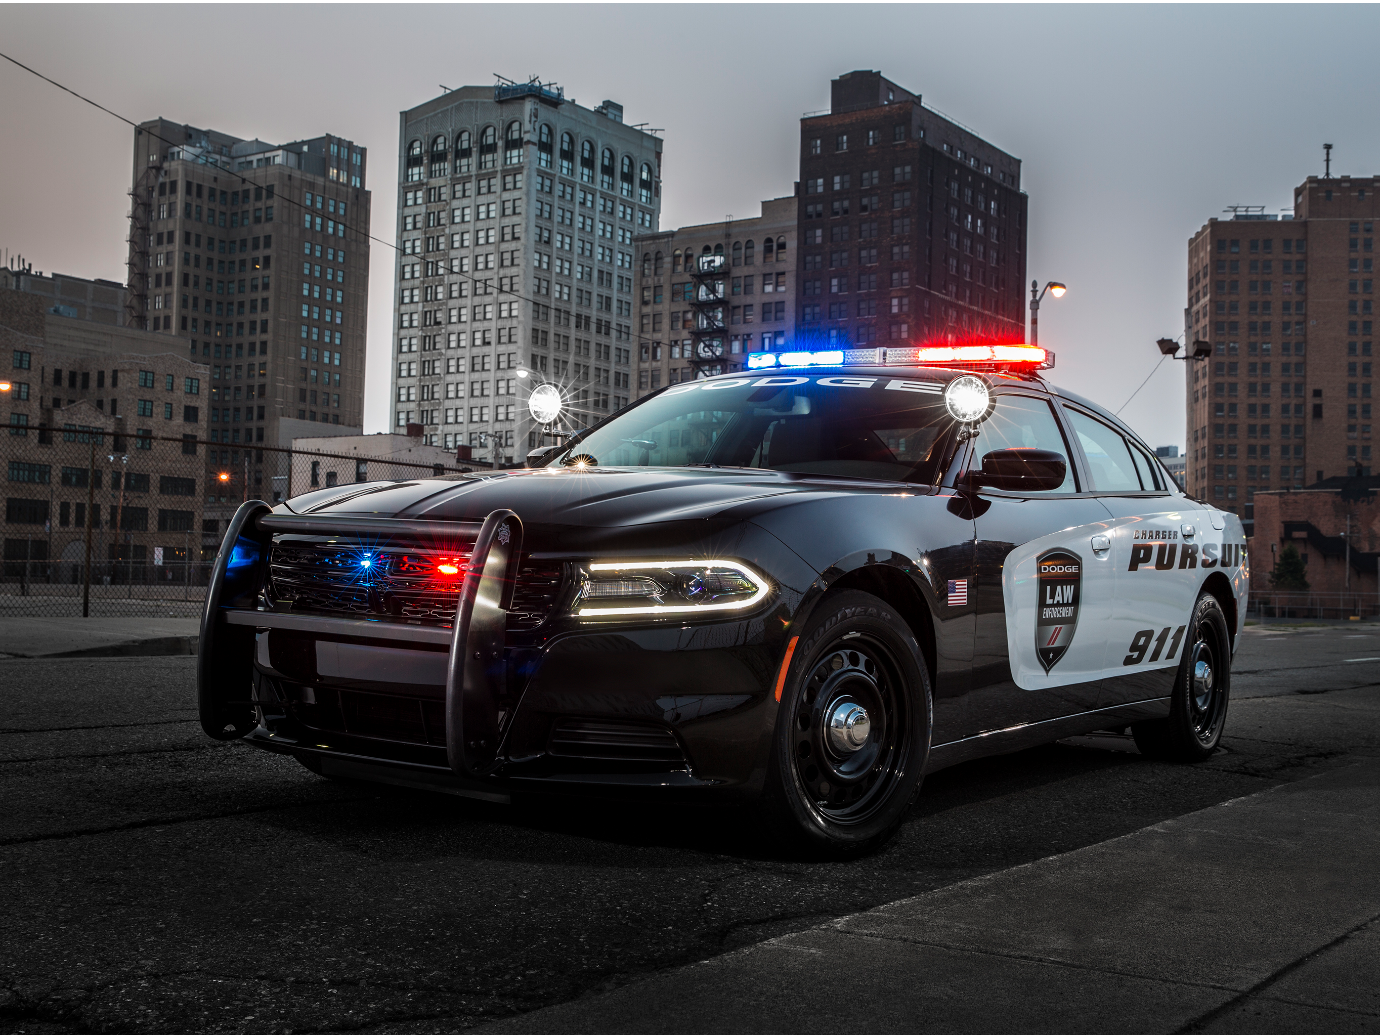 Image source:  http://static1.businessinsider.com/image/581cea49691e881b008b4ec7/these-are-the-10-fastest-police-cars-in-america.jpg